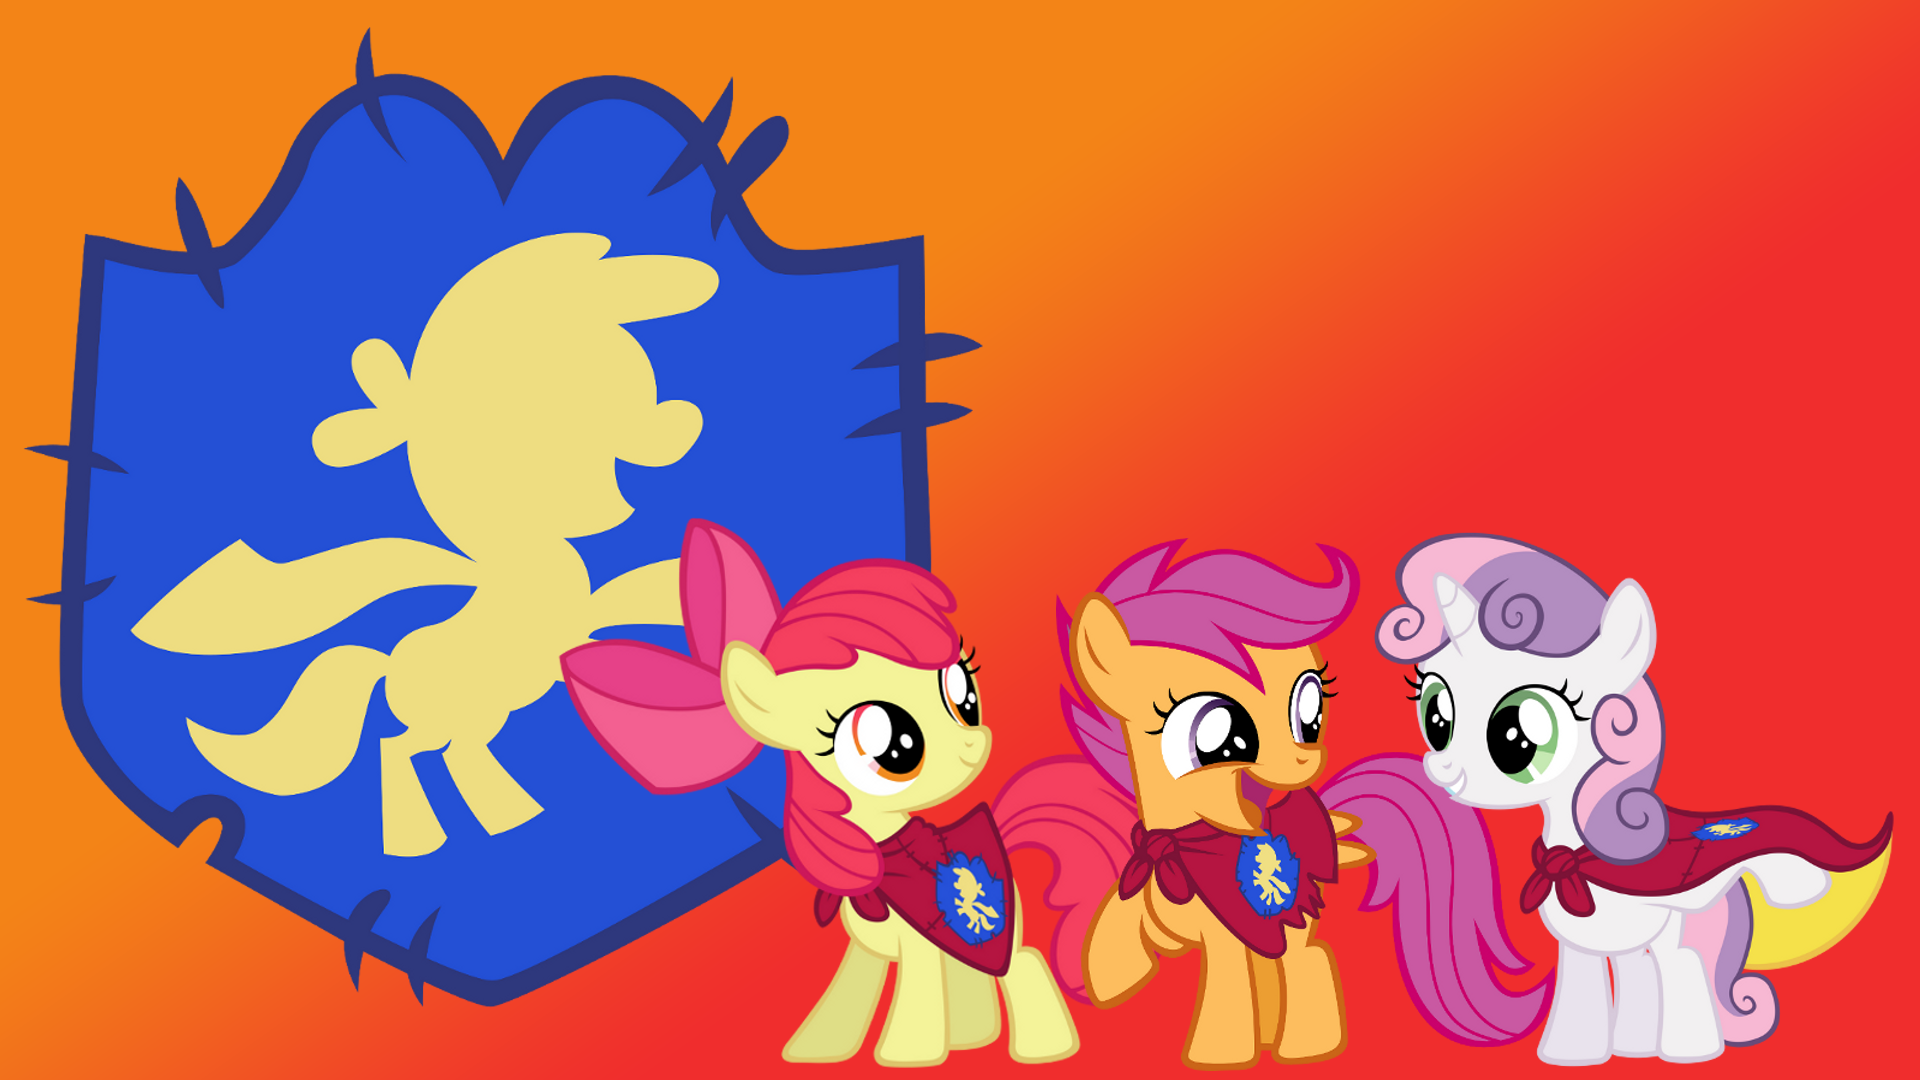 My little pony: Friendship is magic Cmc_wallpaper_by_neodarkwing-d5681xm